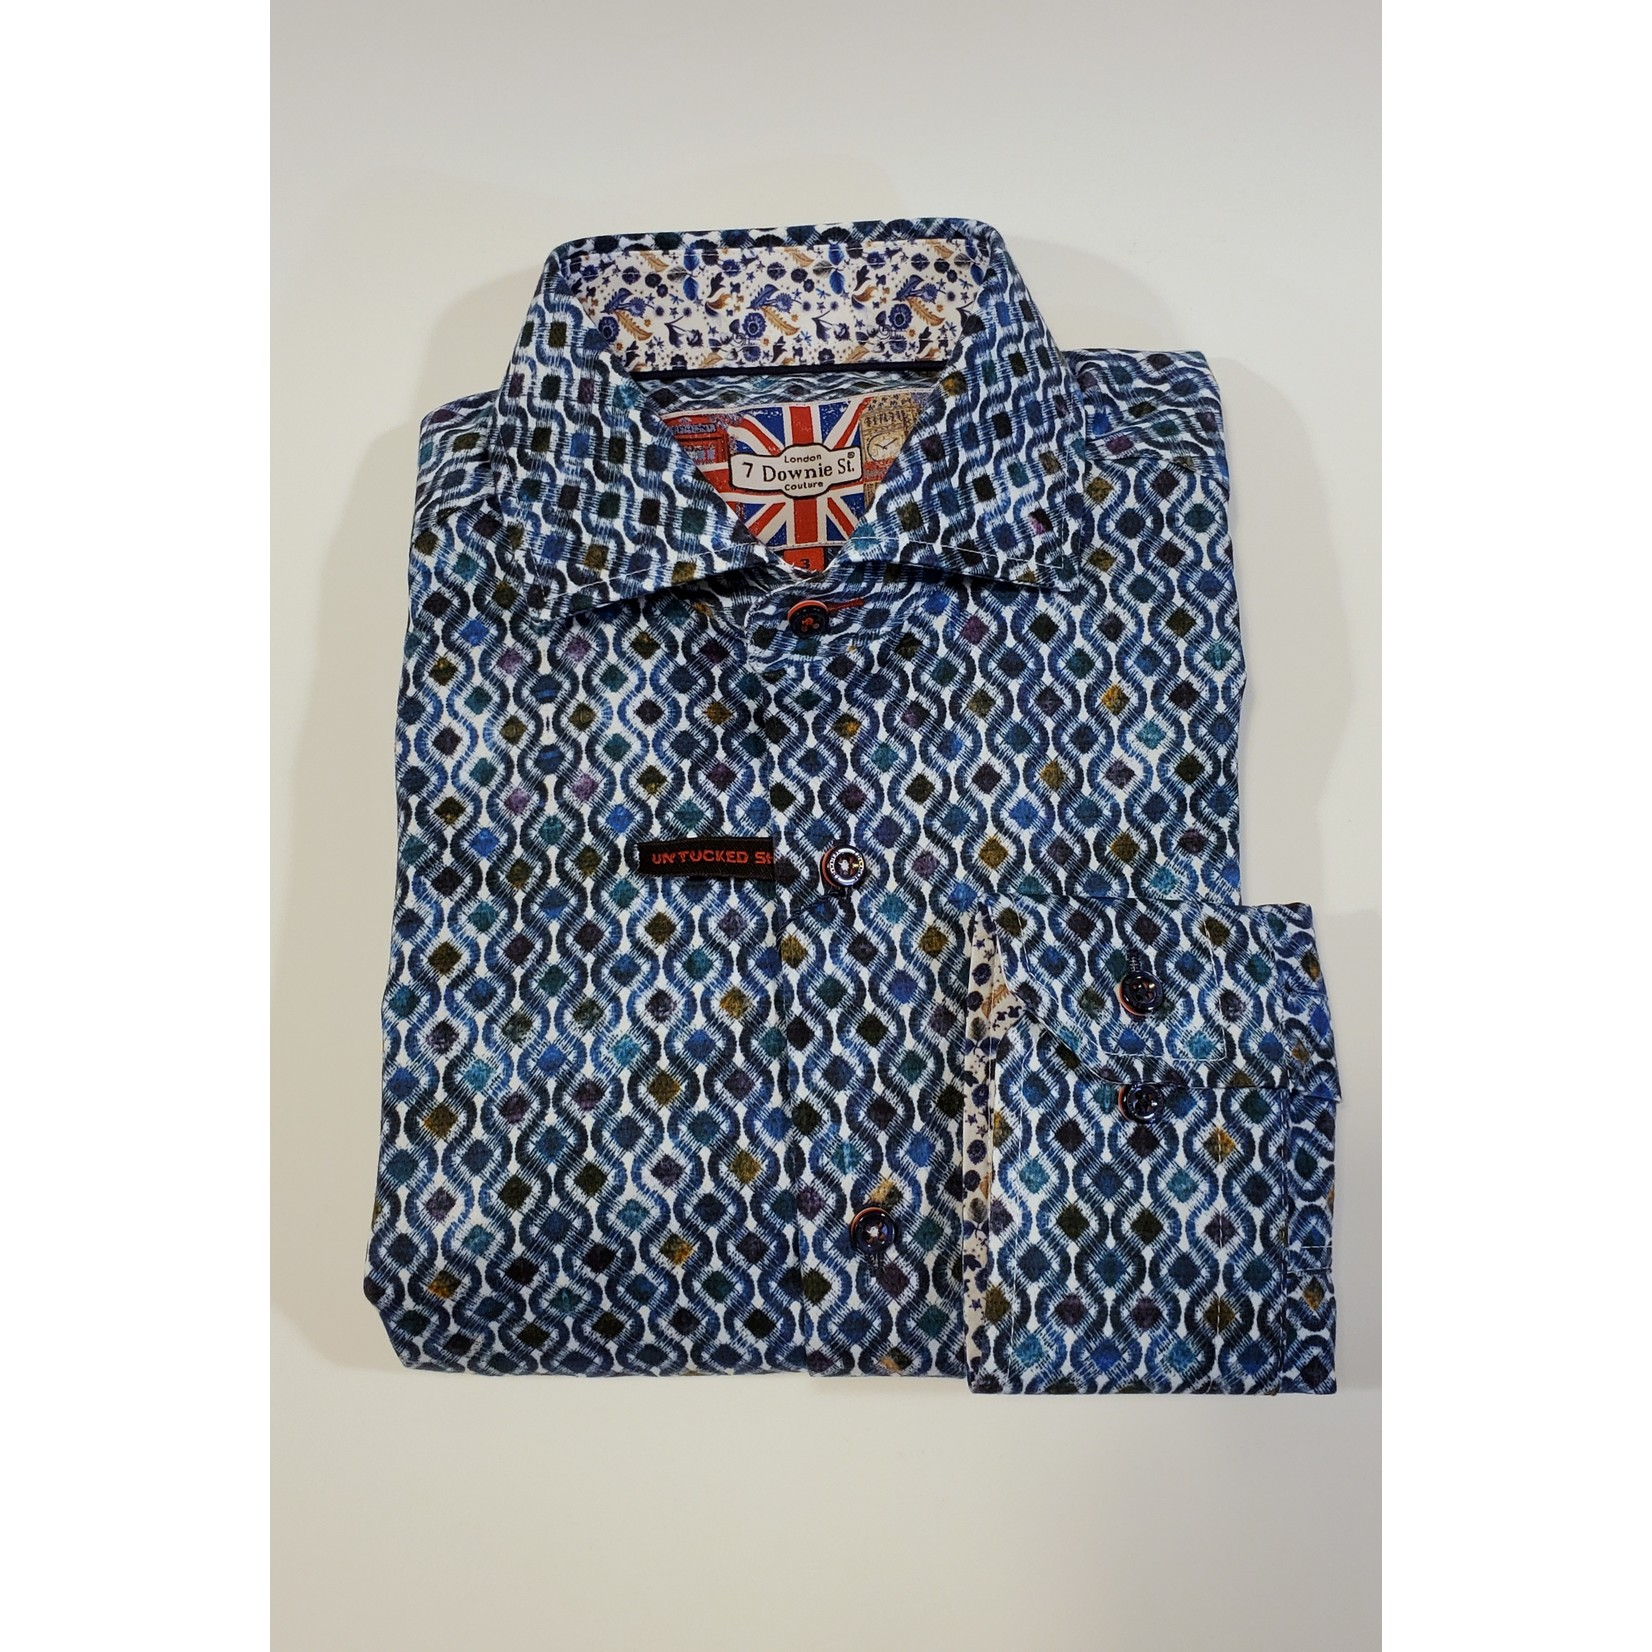 7 Downie St. 7 Downie St Long-Sleeve Spring Sportshirts - Multiple Patterns